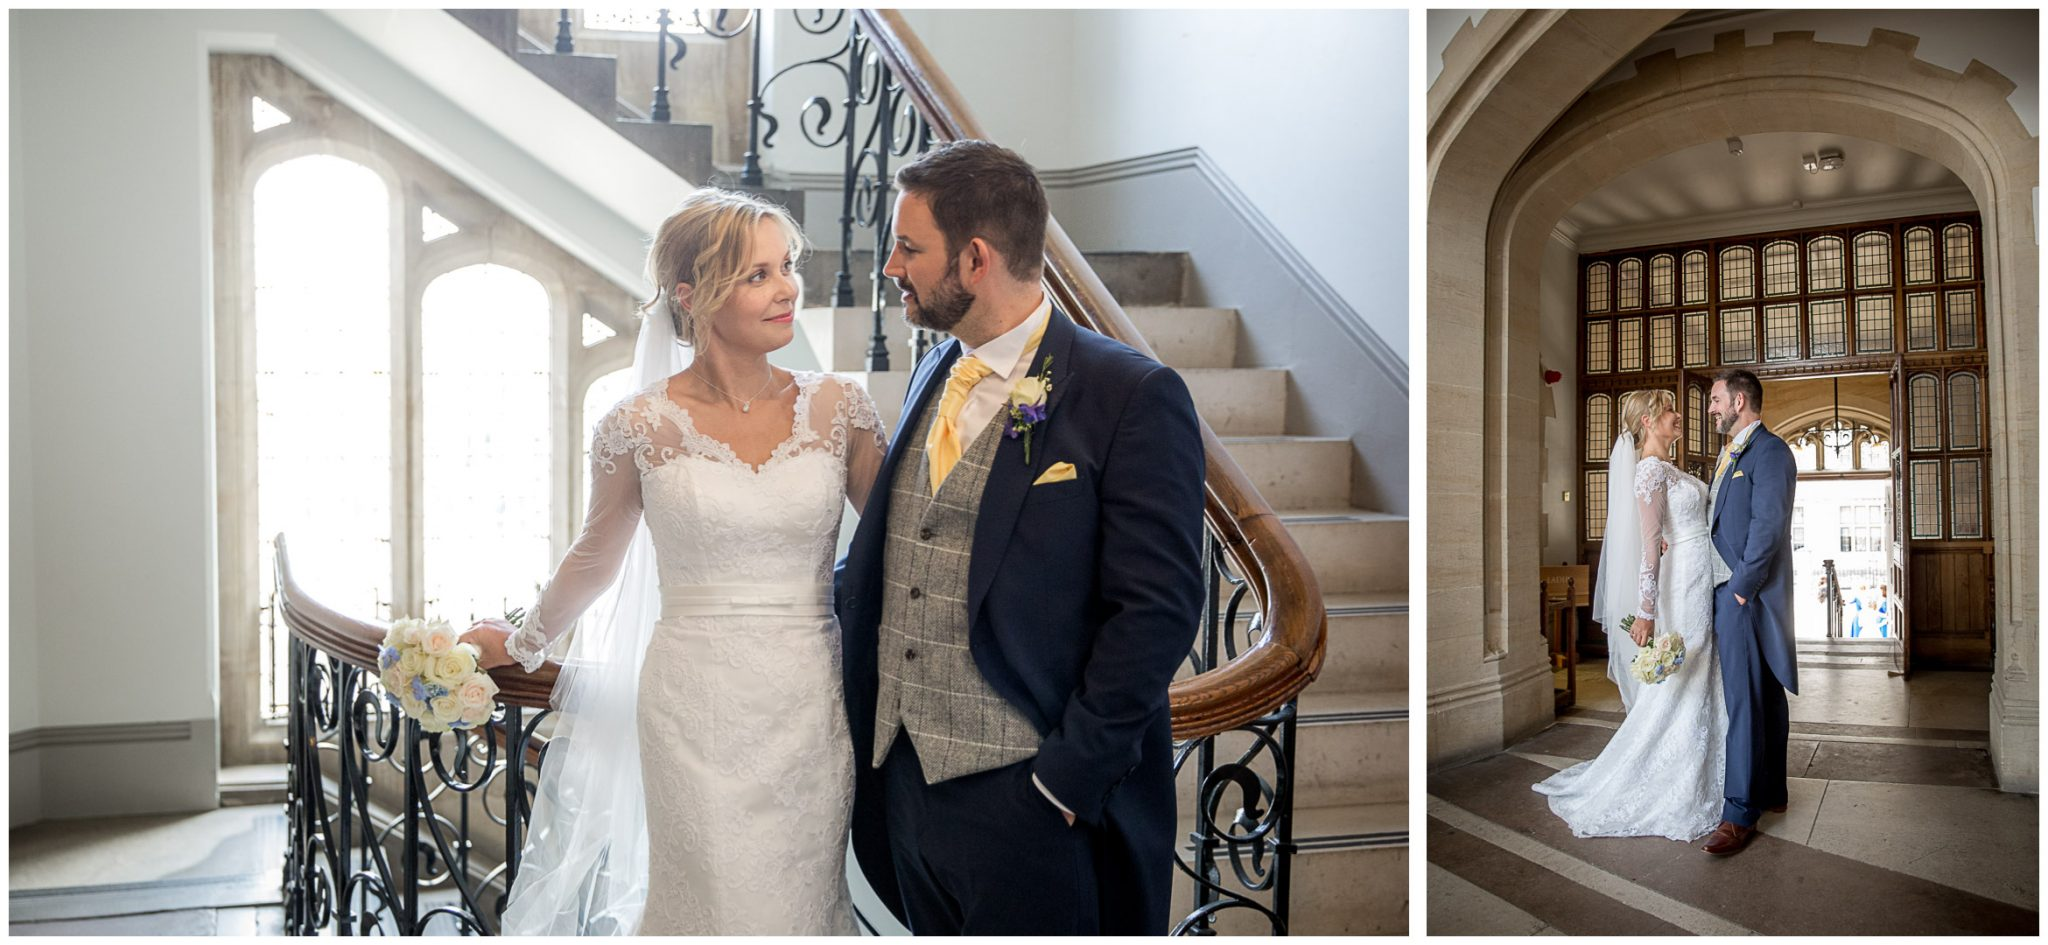 Couple portraits by the staircase in Winchester's Registry Office